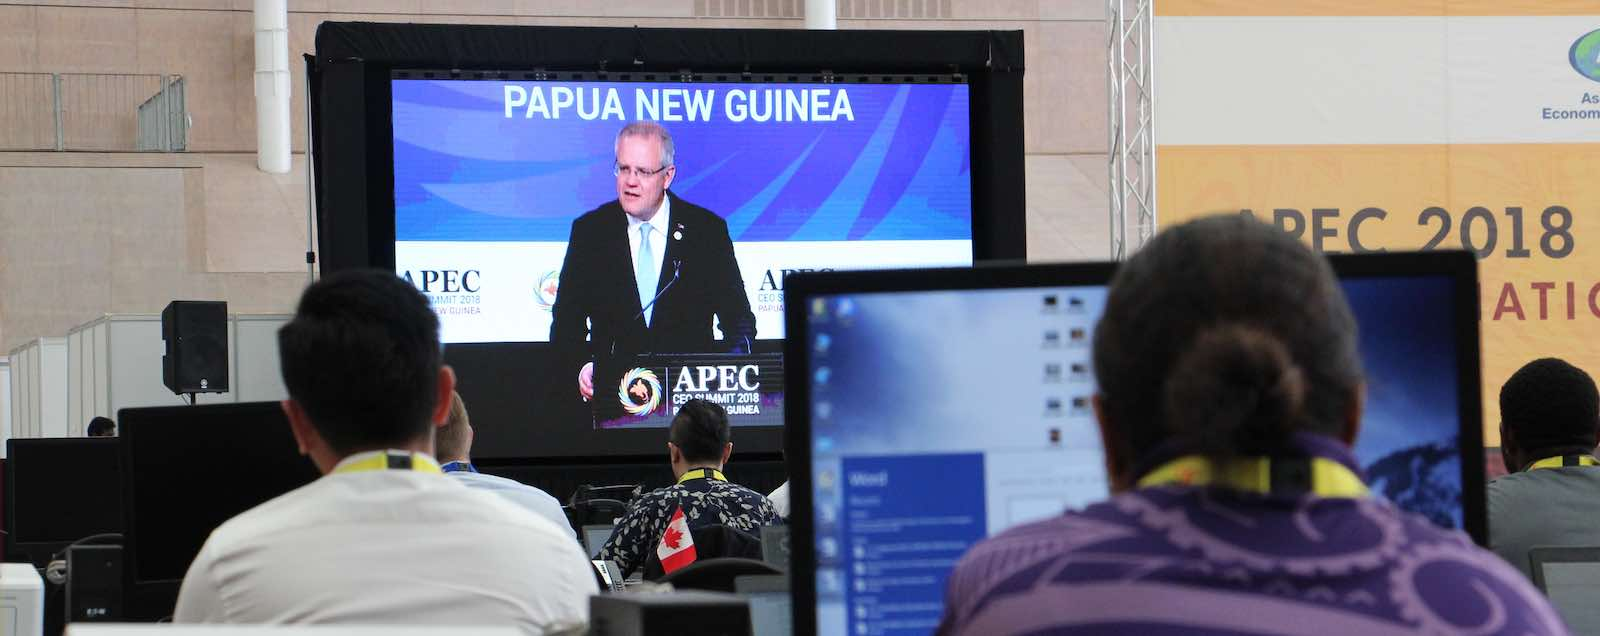 Australian Prime Minister Scott Morrison speaks to APEC leaders in Port Moresby (Photo: Shane McLeod)